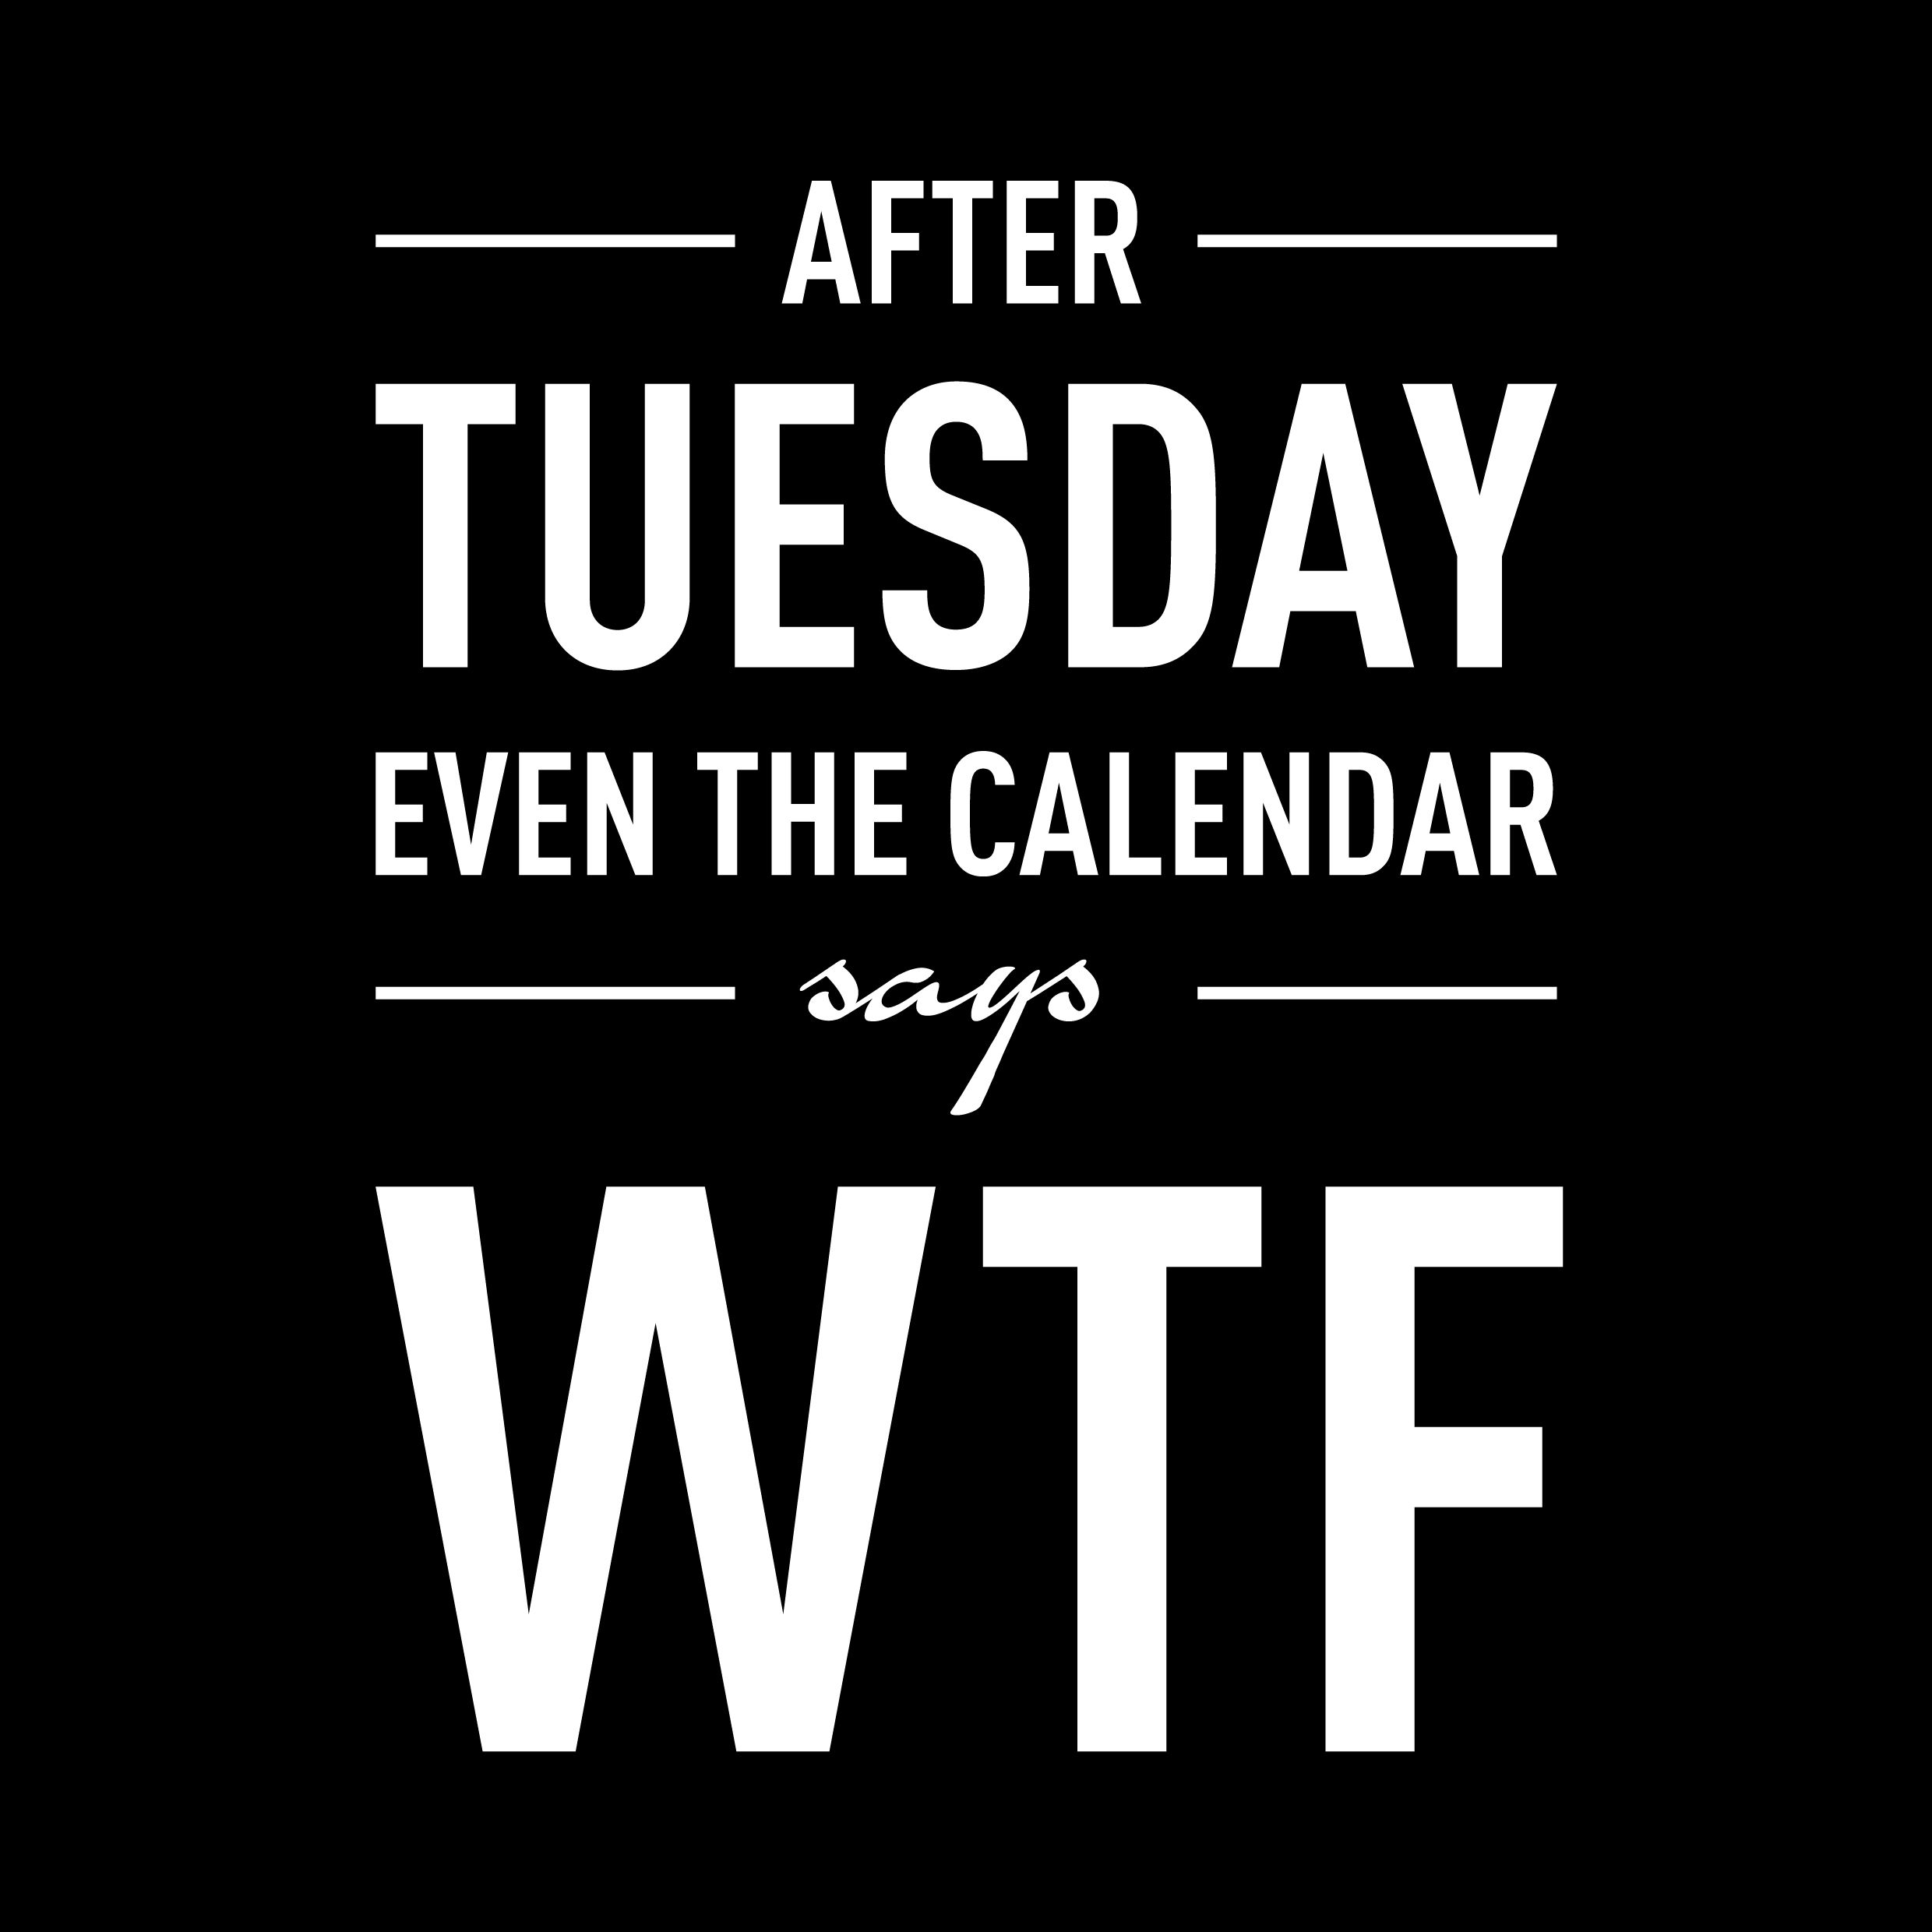 After tuesday even the calendar says WTF. Made by Chewsmix